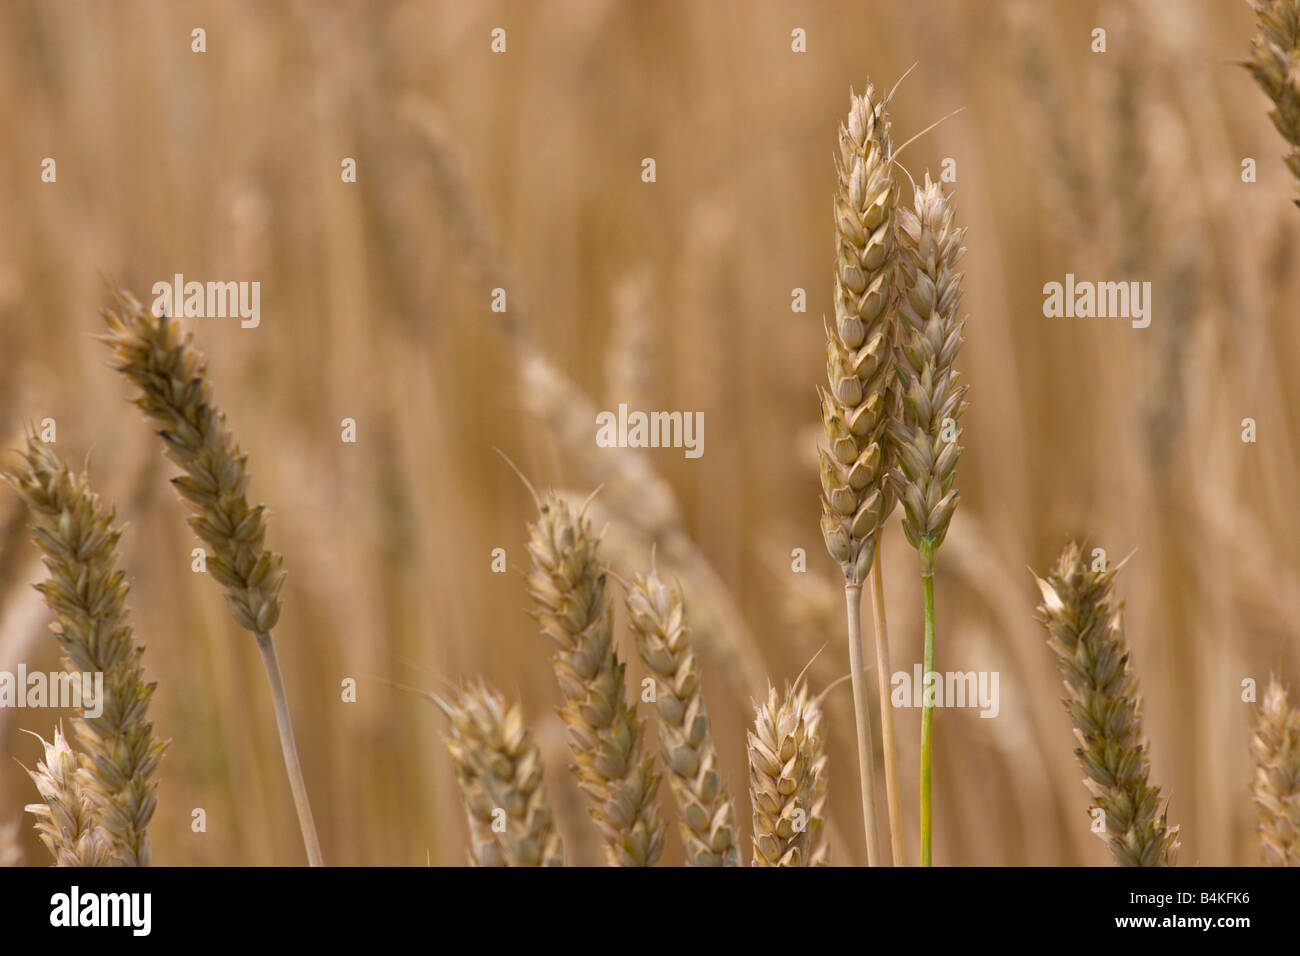 wheat field cereal crop harvest bread basket - Stock Image